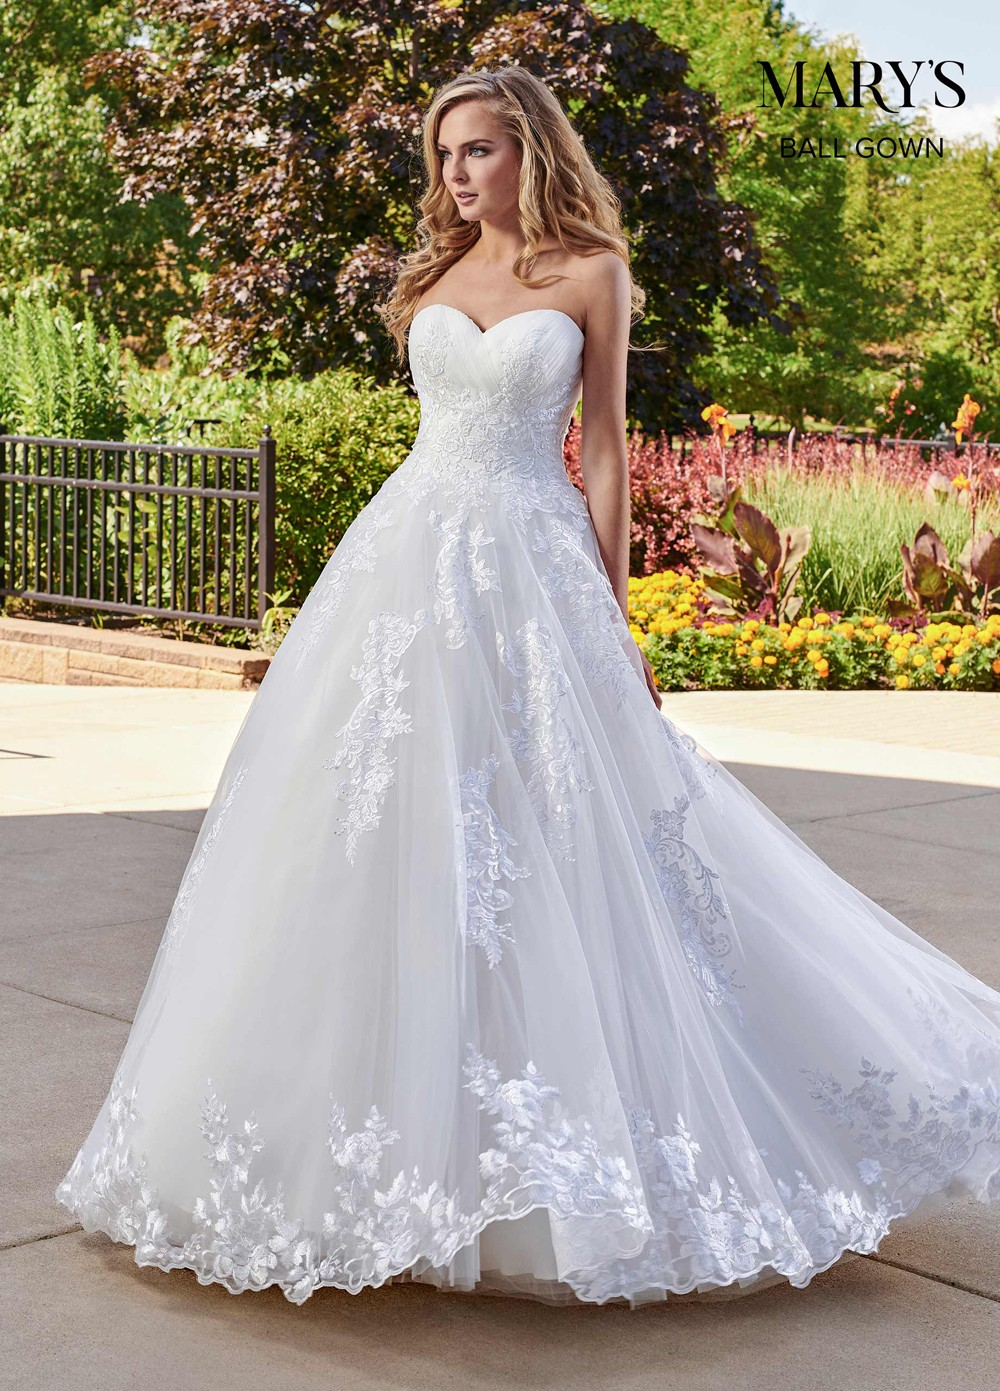 marys-bridal-mb6032-strapless-sweetheart-neck-quinceanera-dress-02.546